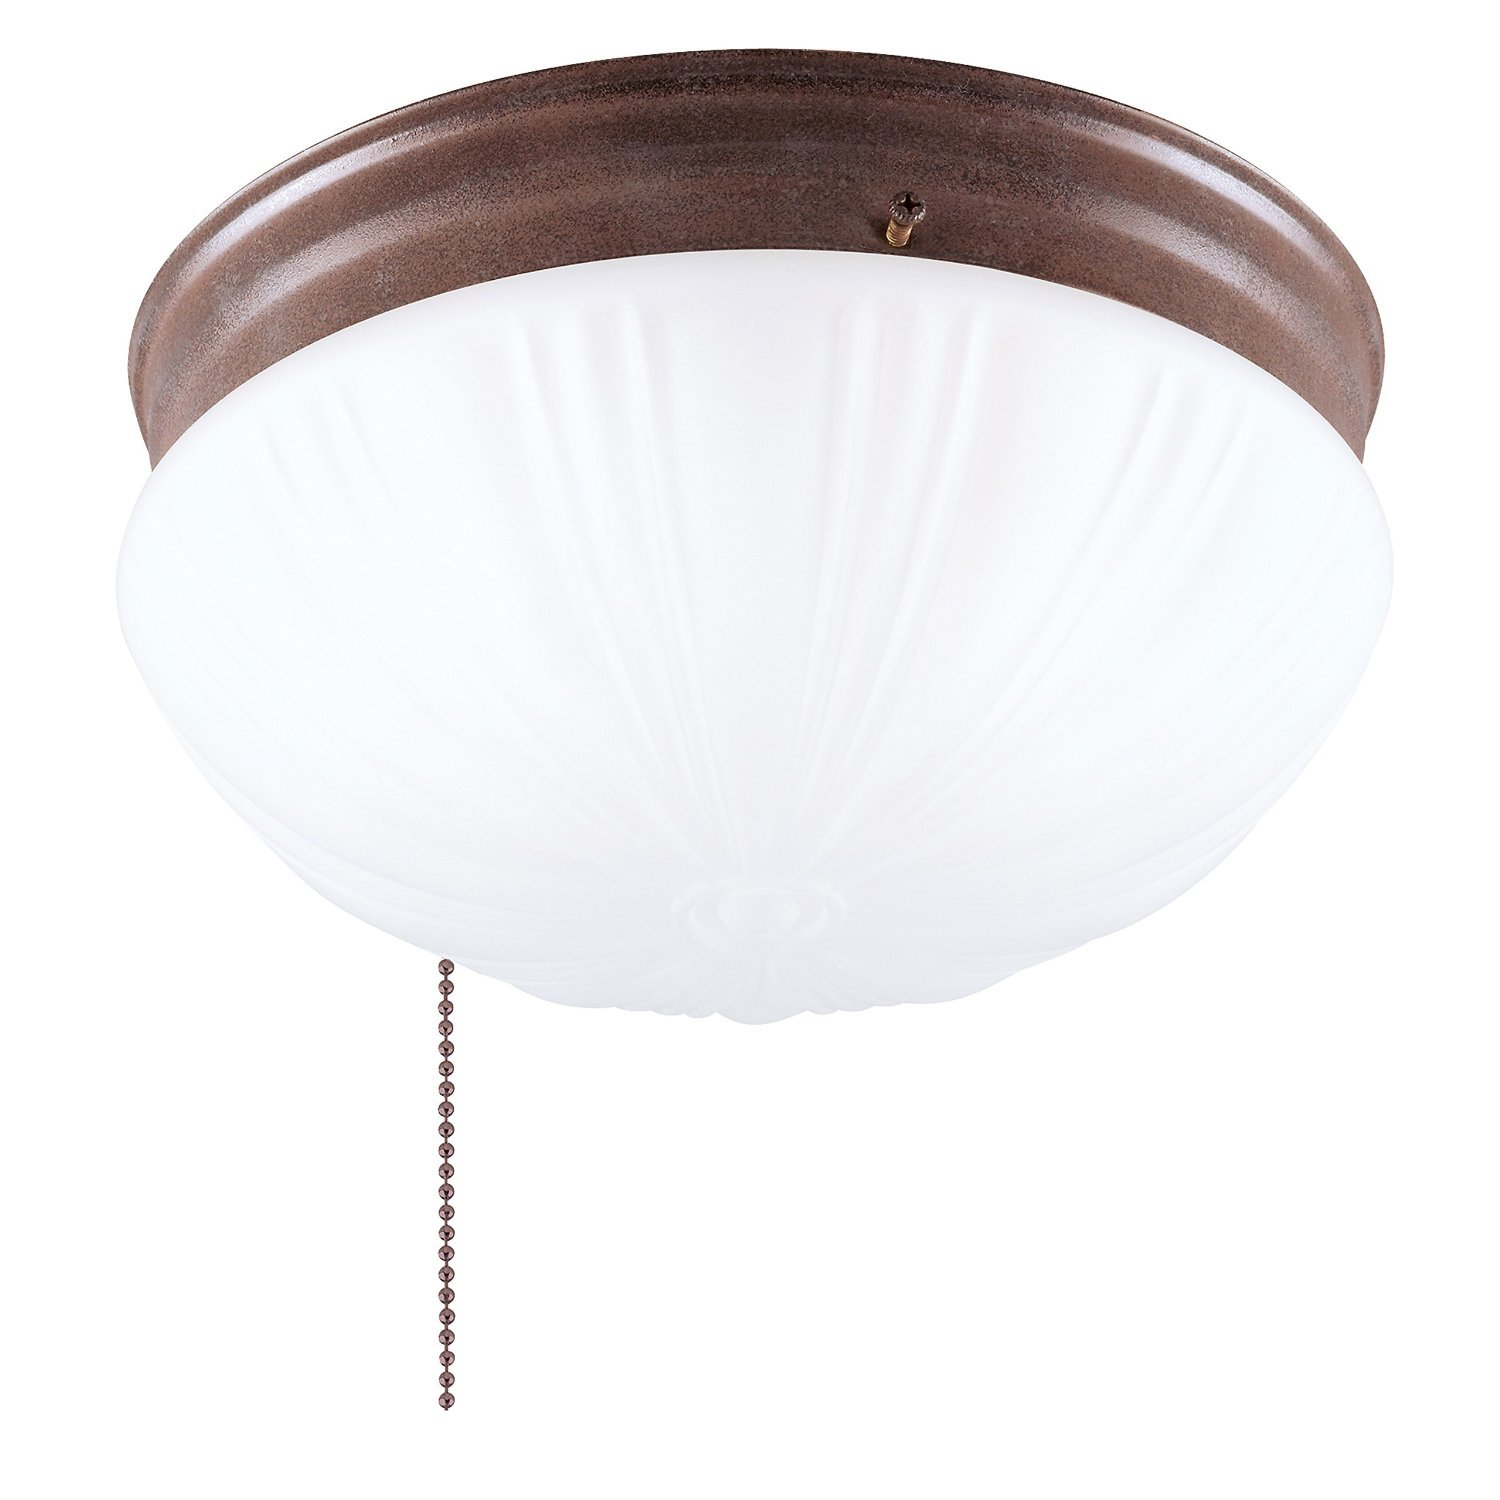 Westinghouse lighting 67202 2 light sienna ceiling fixture flush westinghouse lighting 67202 2 light sienna ceiling fixture flush mount ceiling light fixtures amazon arubaitofo Image collections